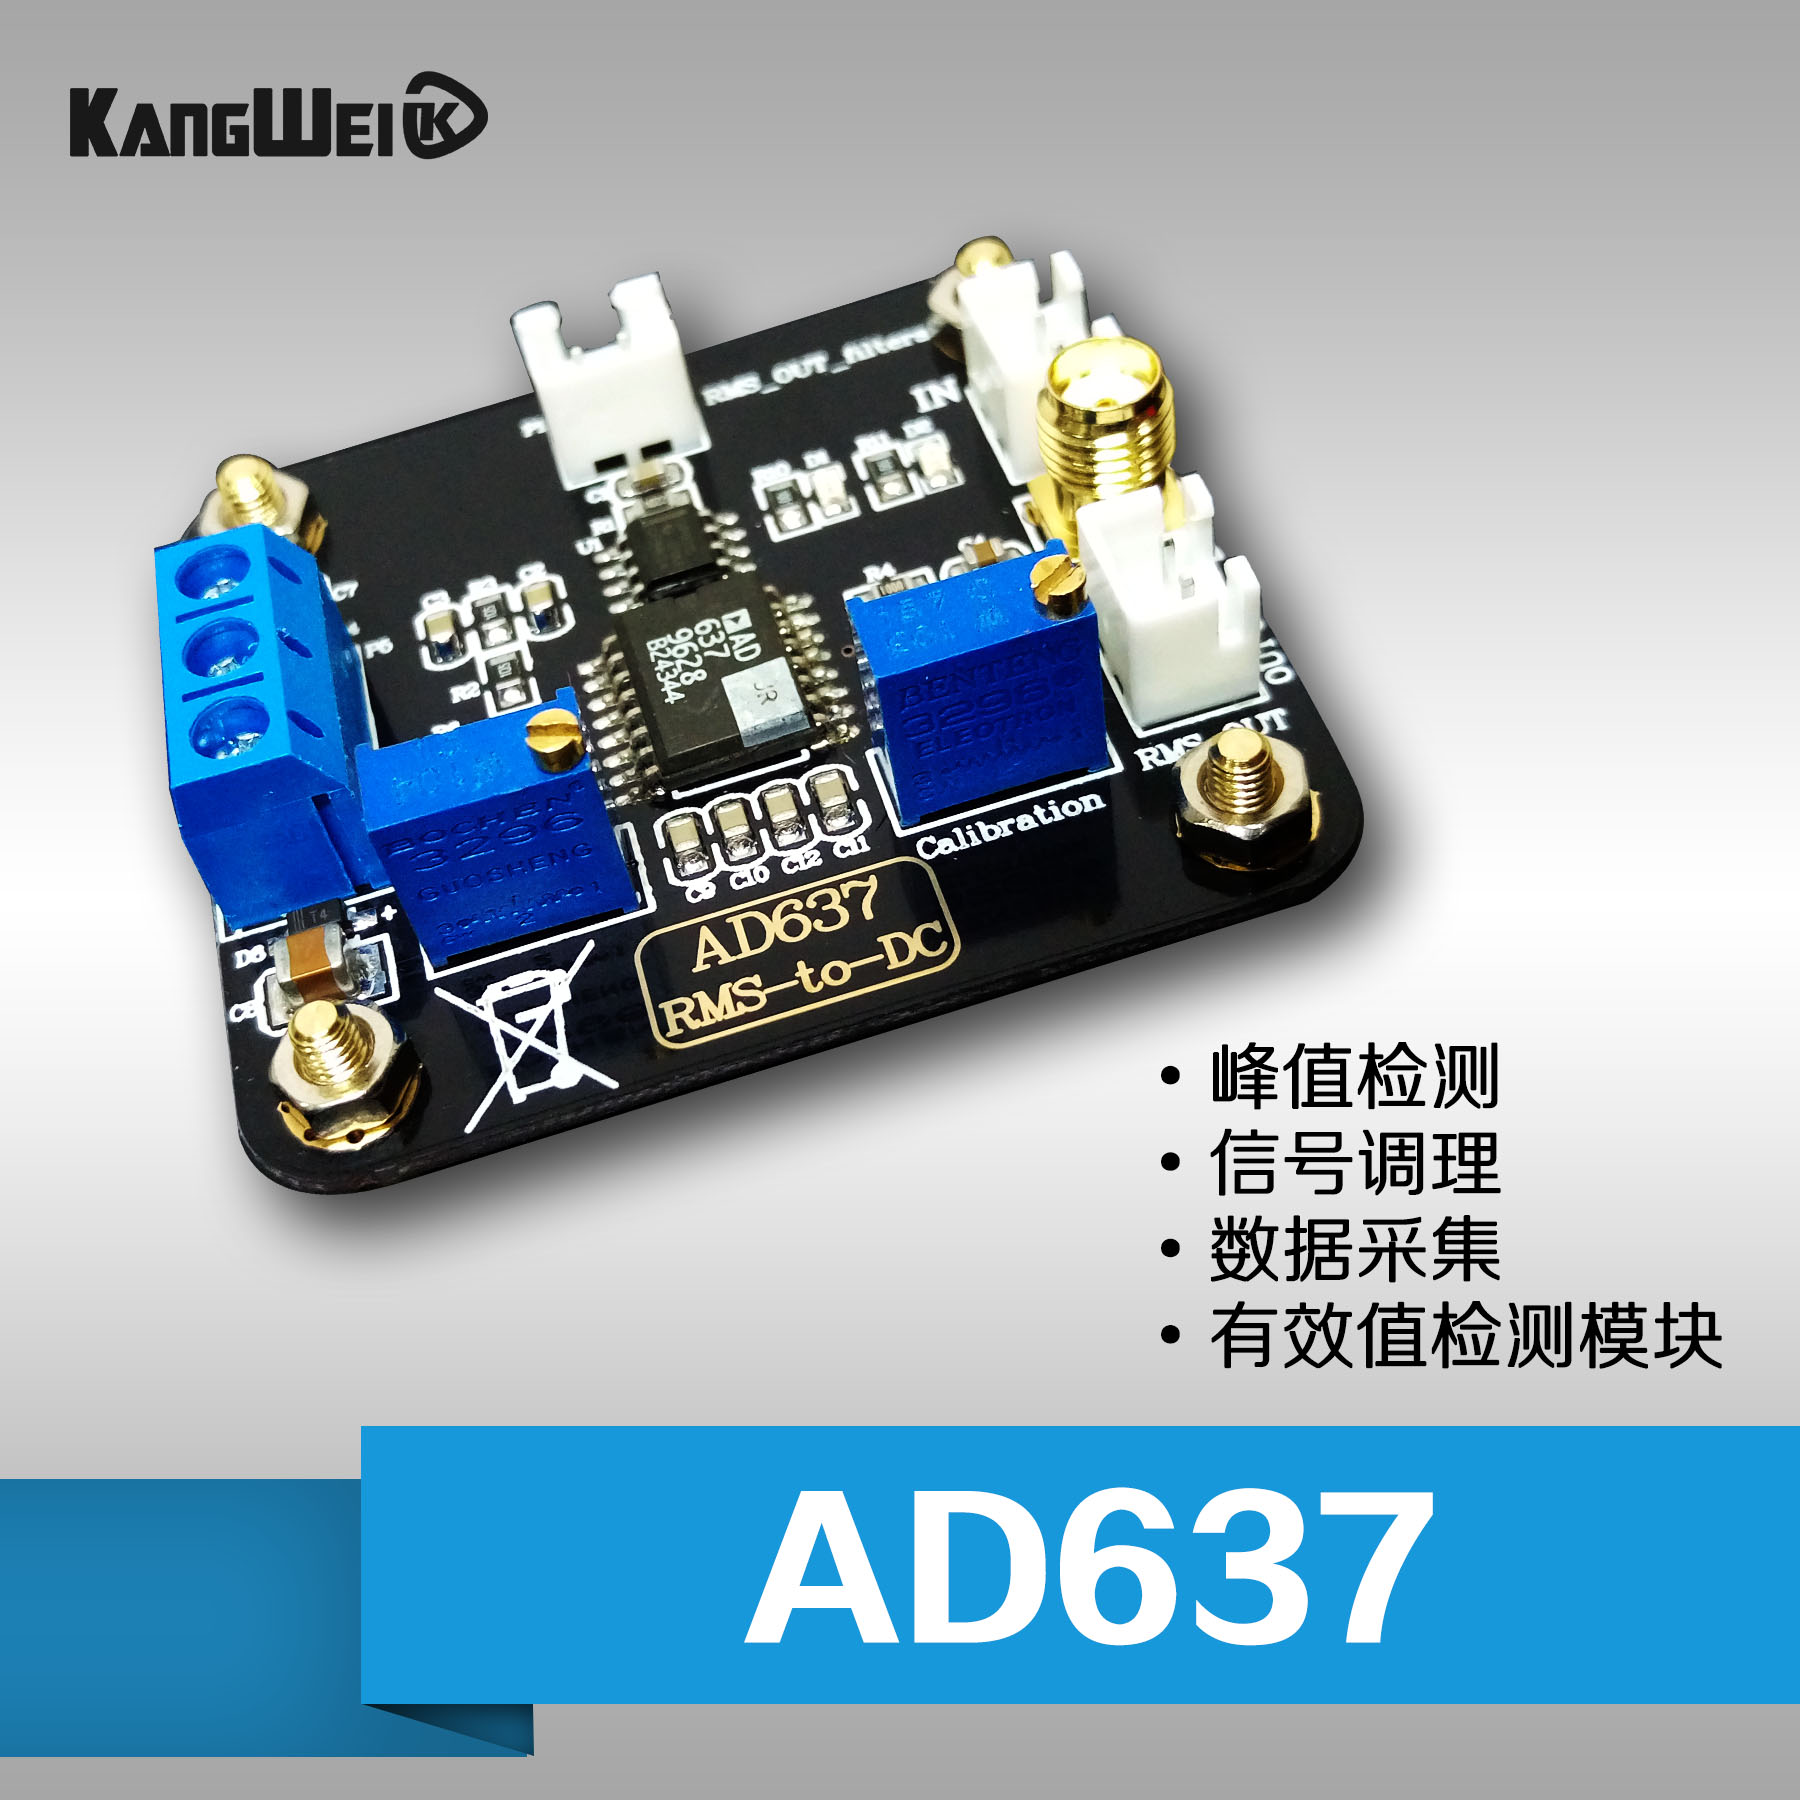 AD637 module effective value detection module peak detection signal conditioning data acquisition peak module<br>